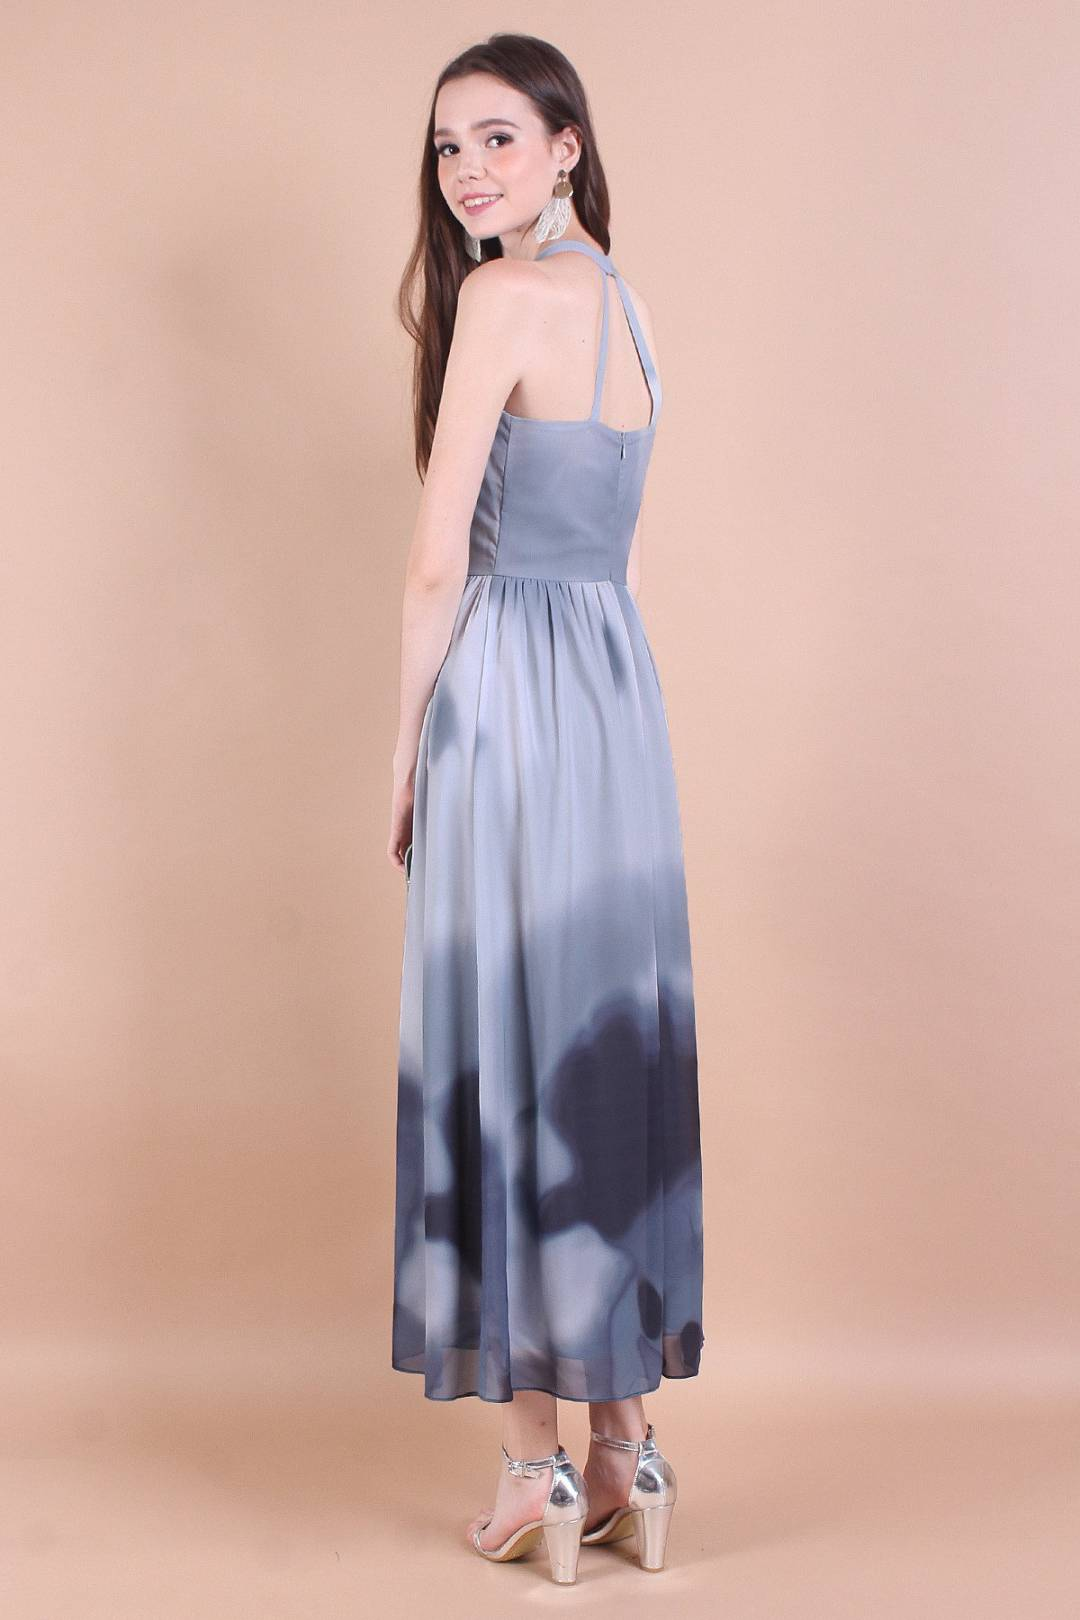 NM ESCAPADE COLOURS EXQUISITE BACK DETAILING MAXI DRESS IN GREYSCALE [XS/S/M/L]